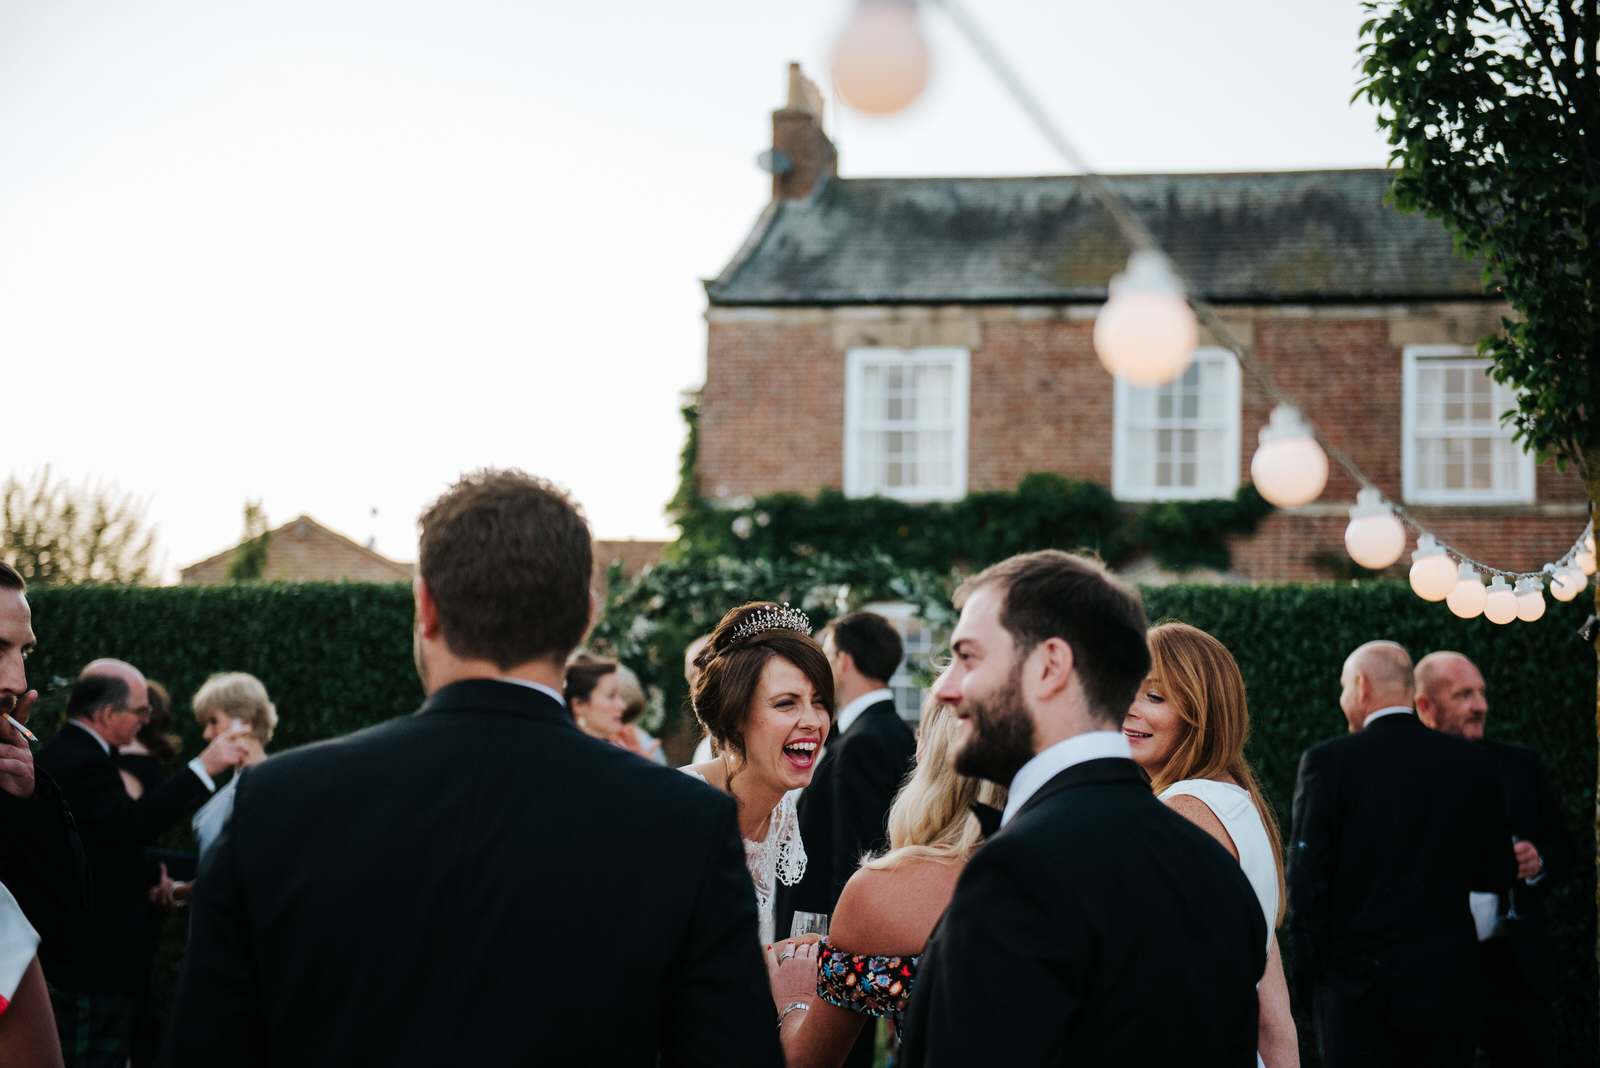 Bride laughs loudly in front of house as wedding reception ends